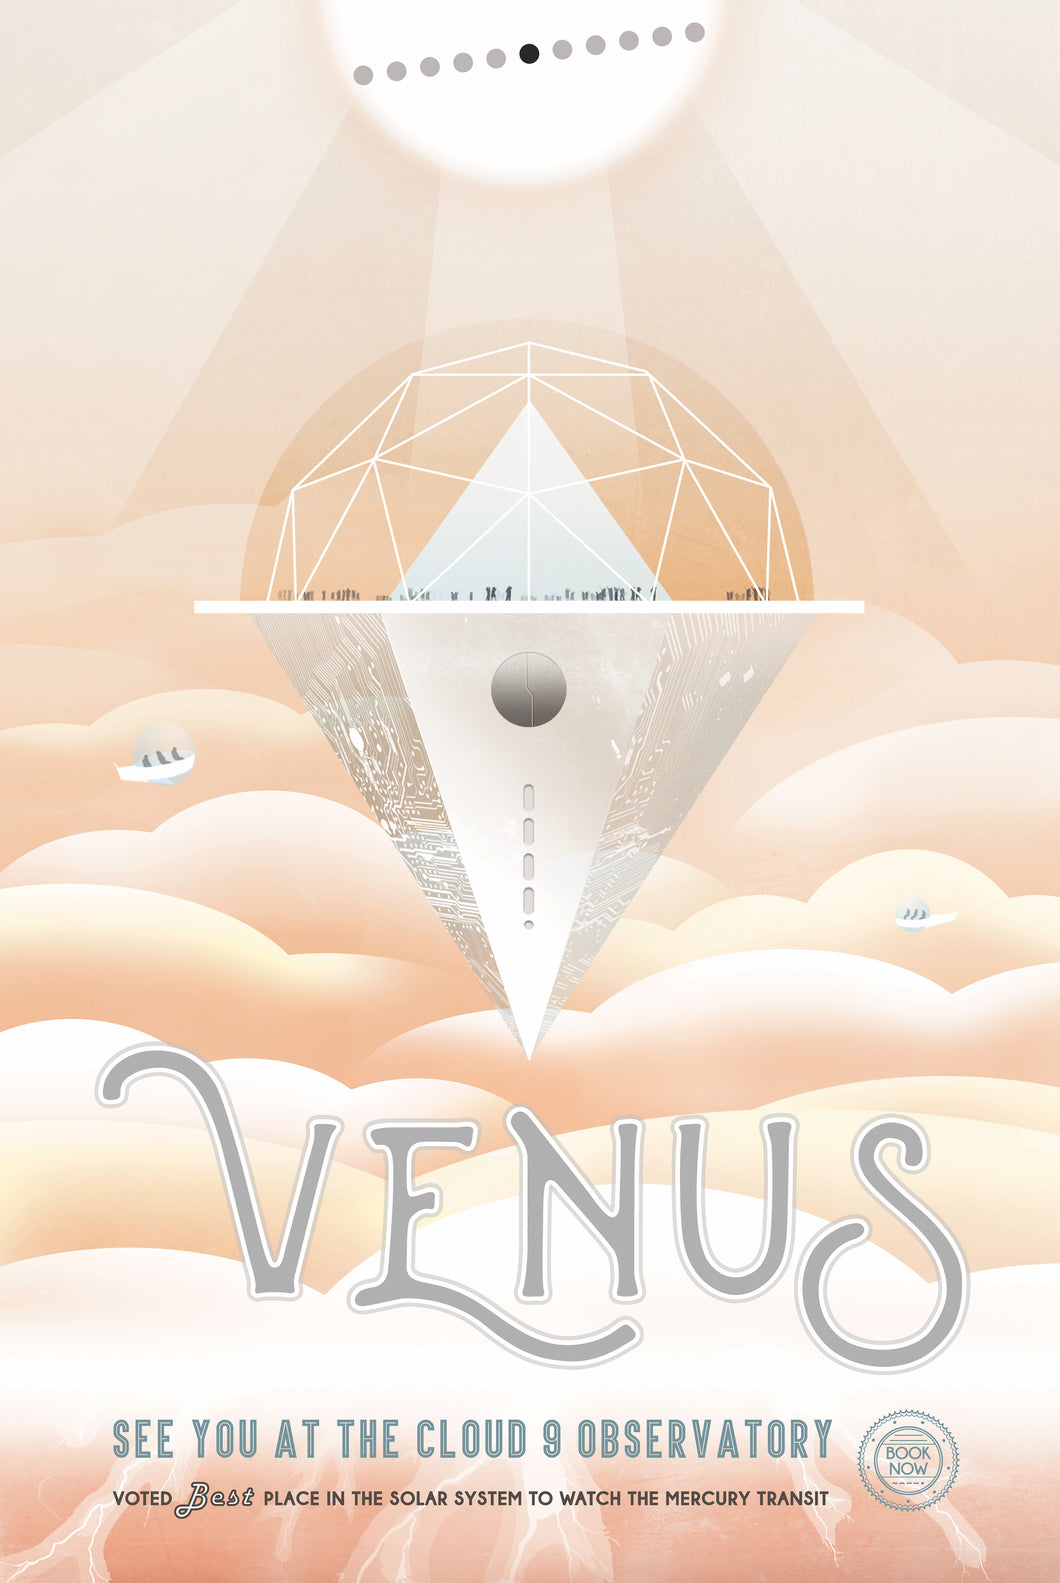 Venus Retro Style NASA Poster Art on ABS